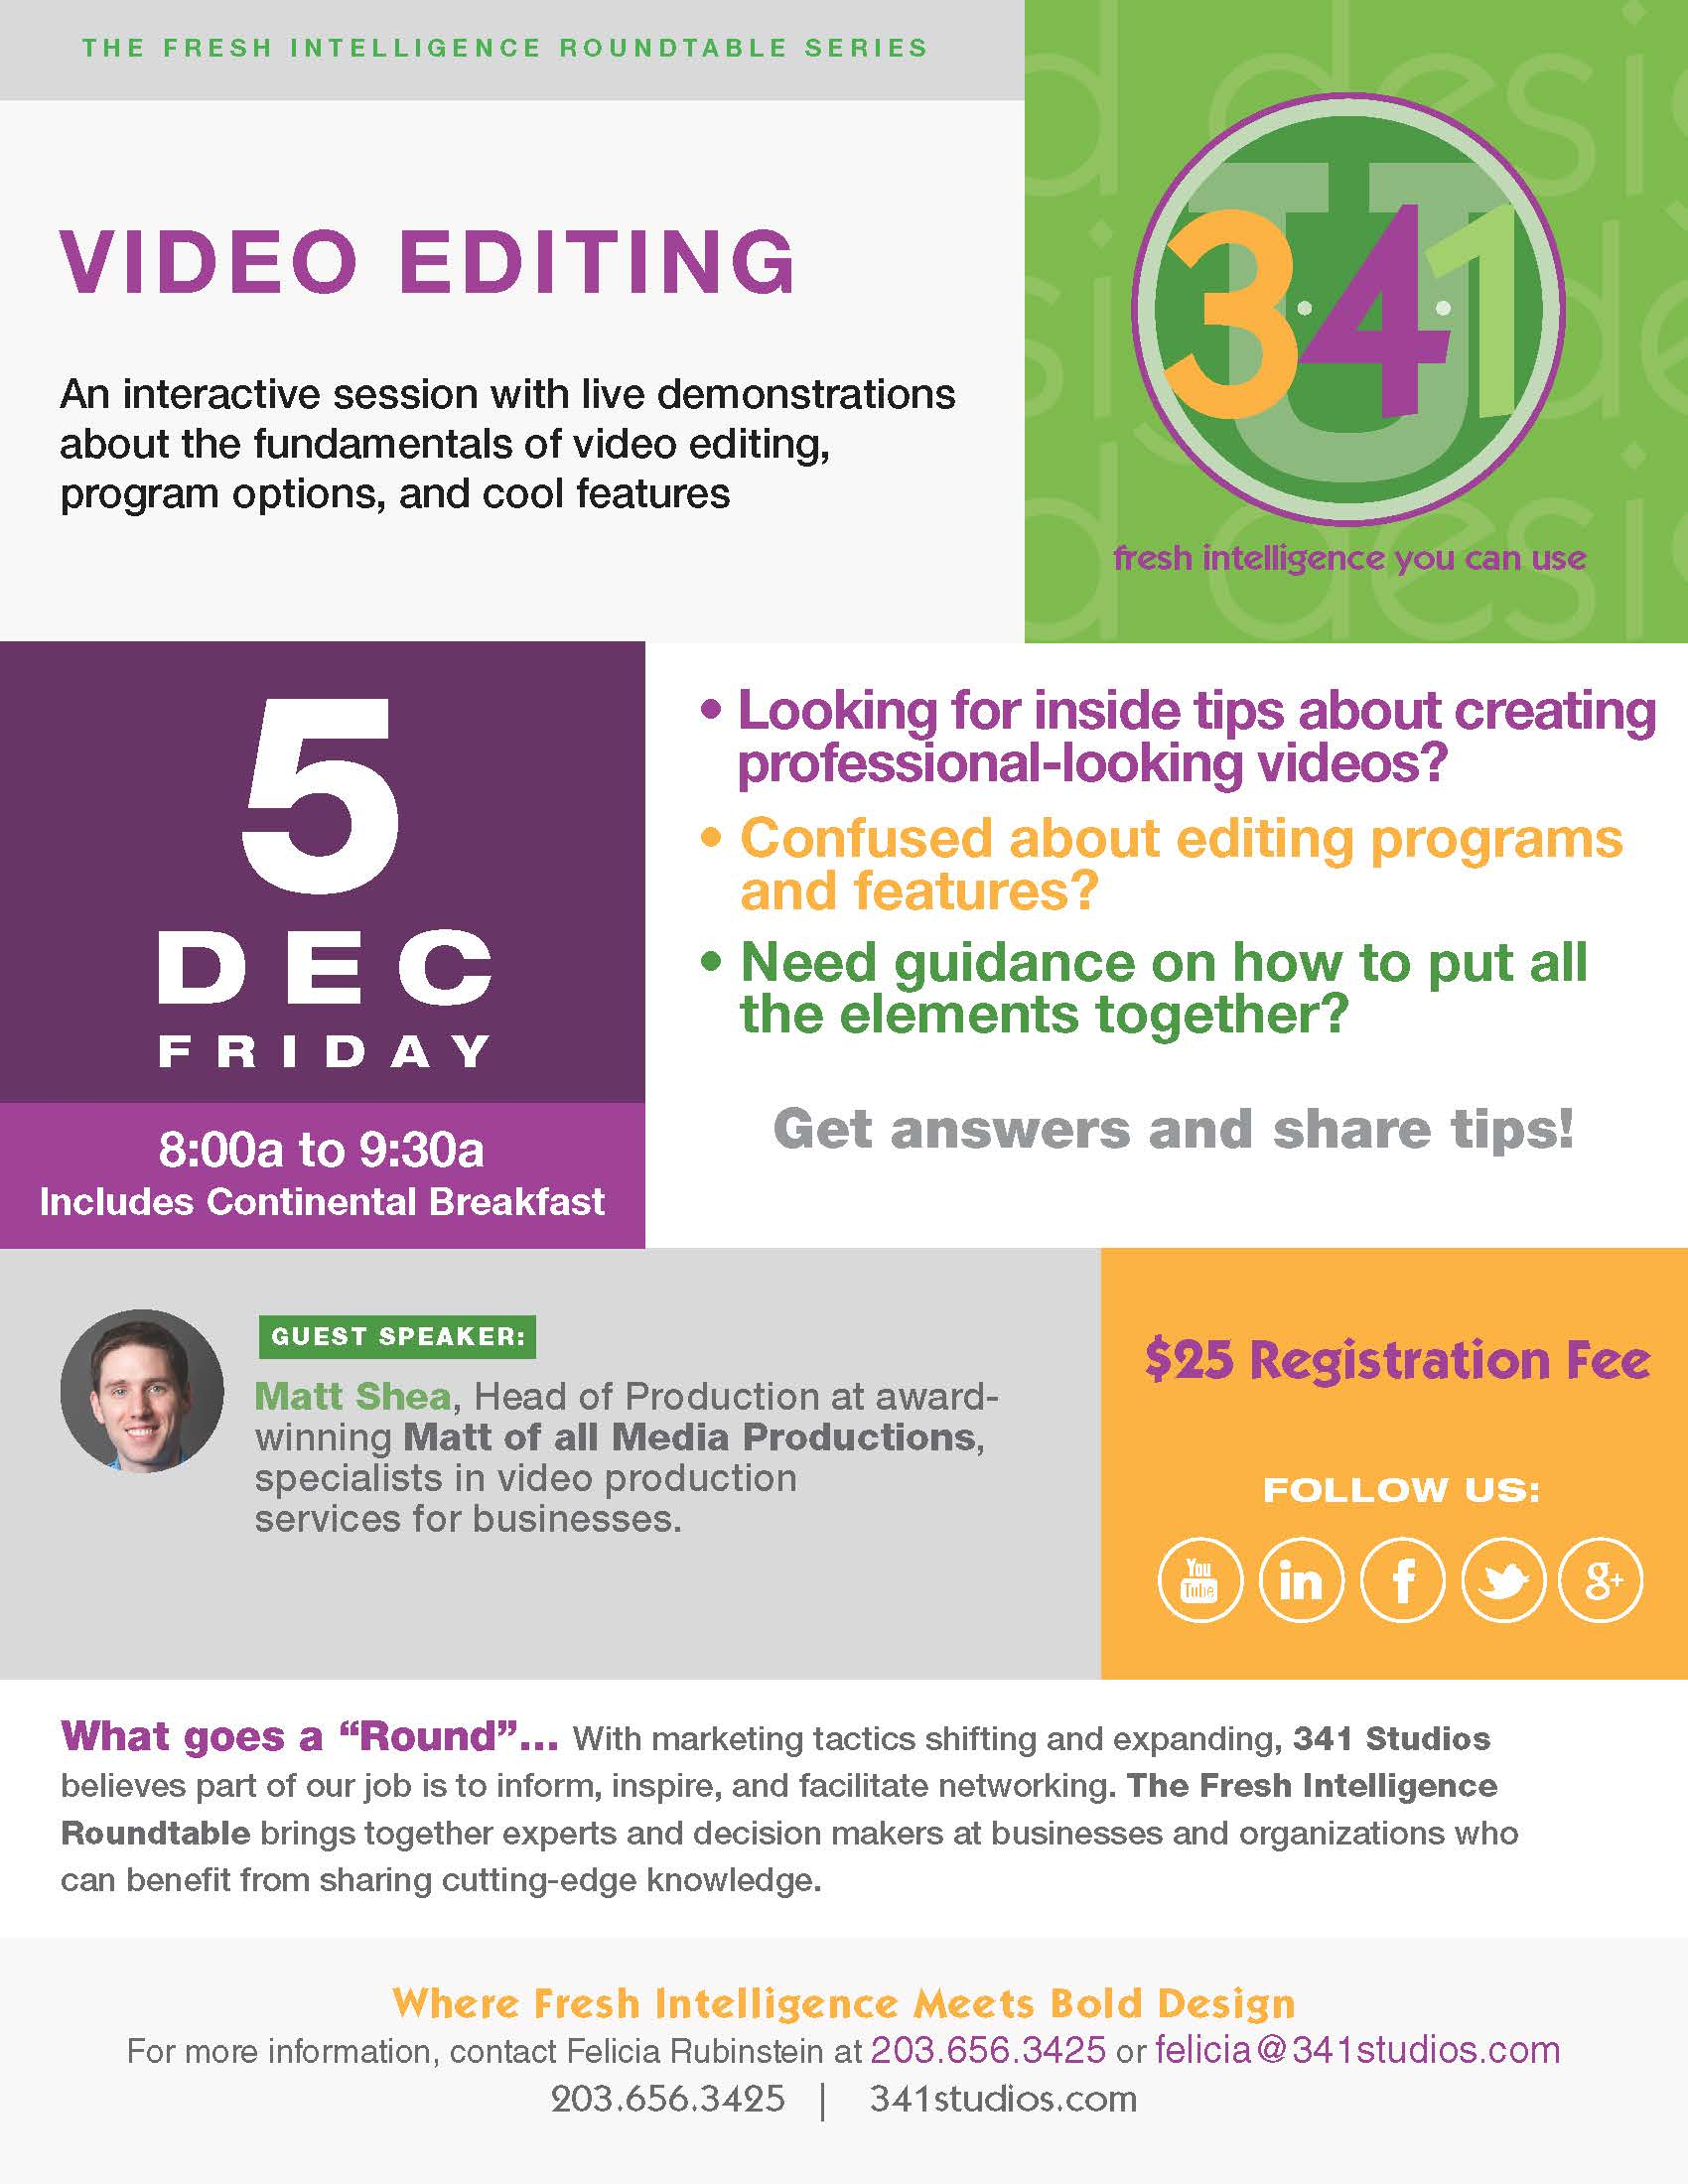 12/5/14 Video Editing Roundtable Invite